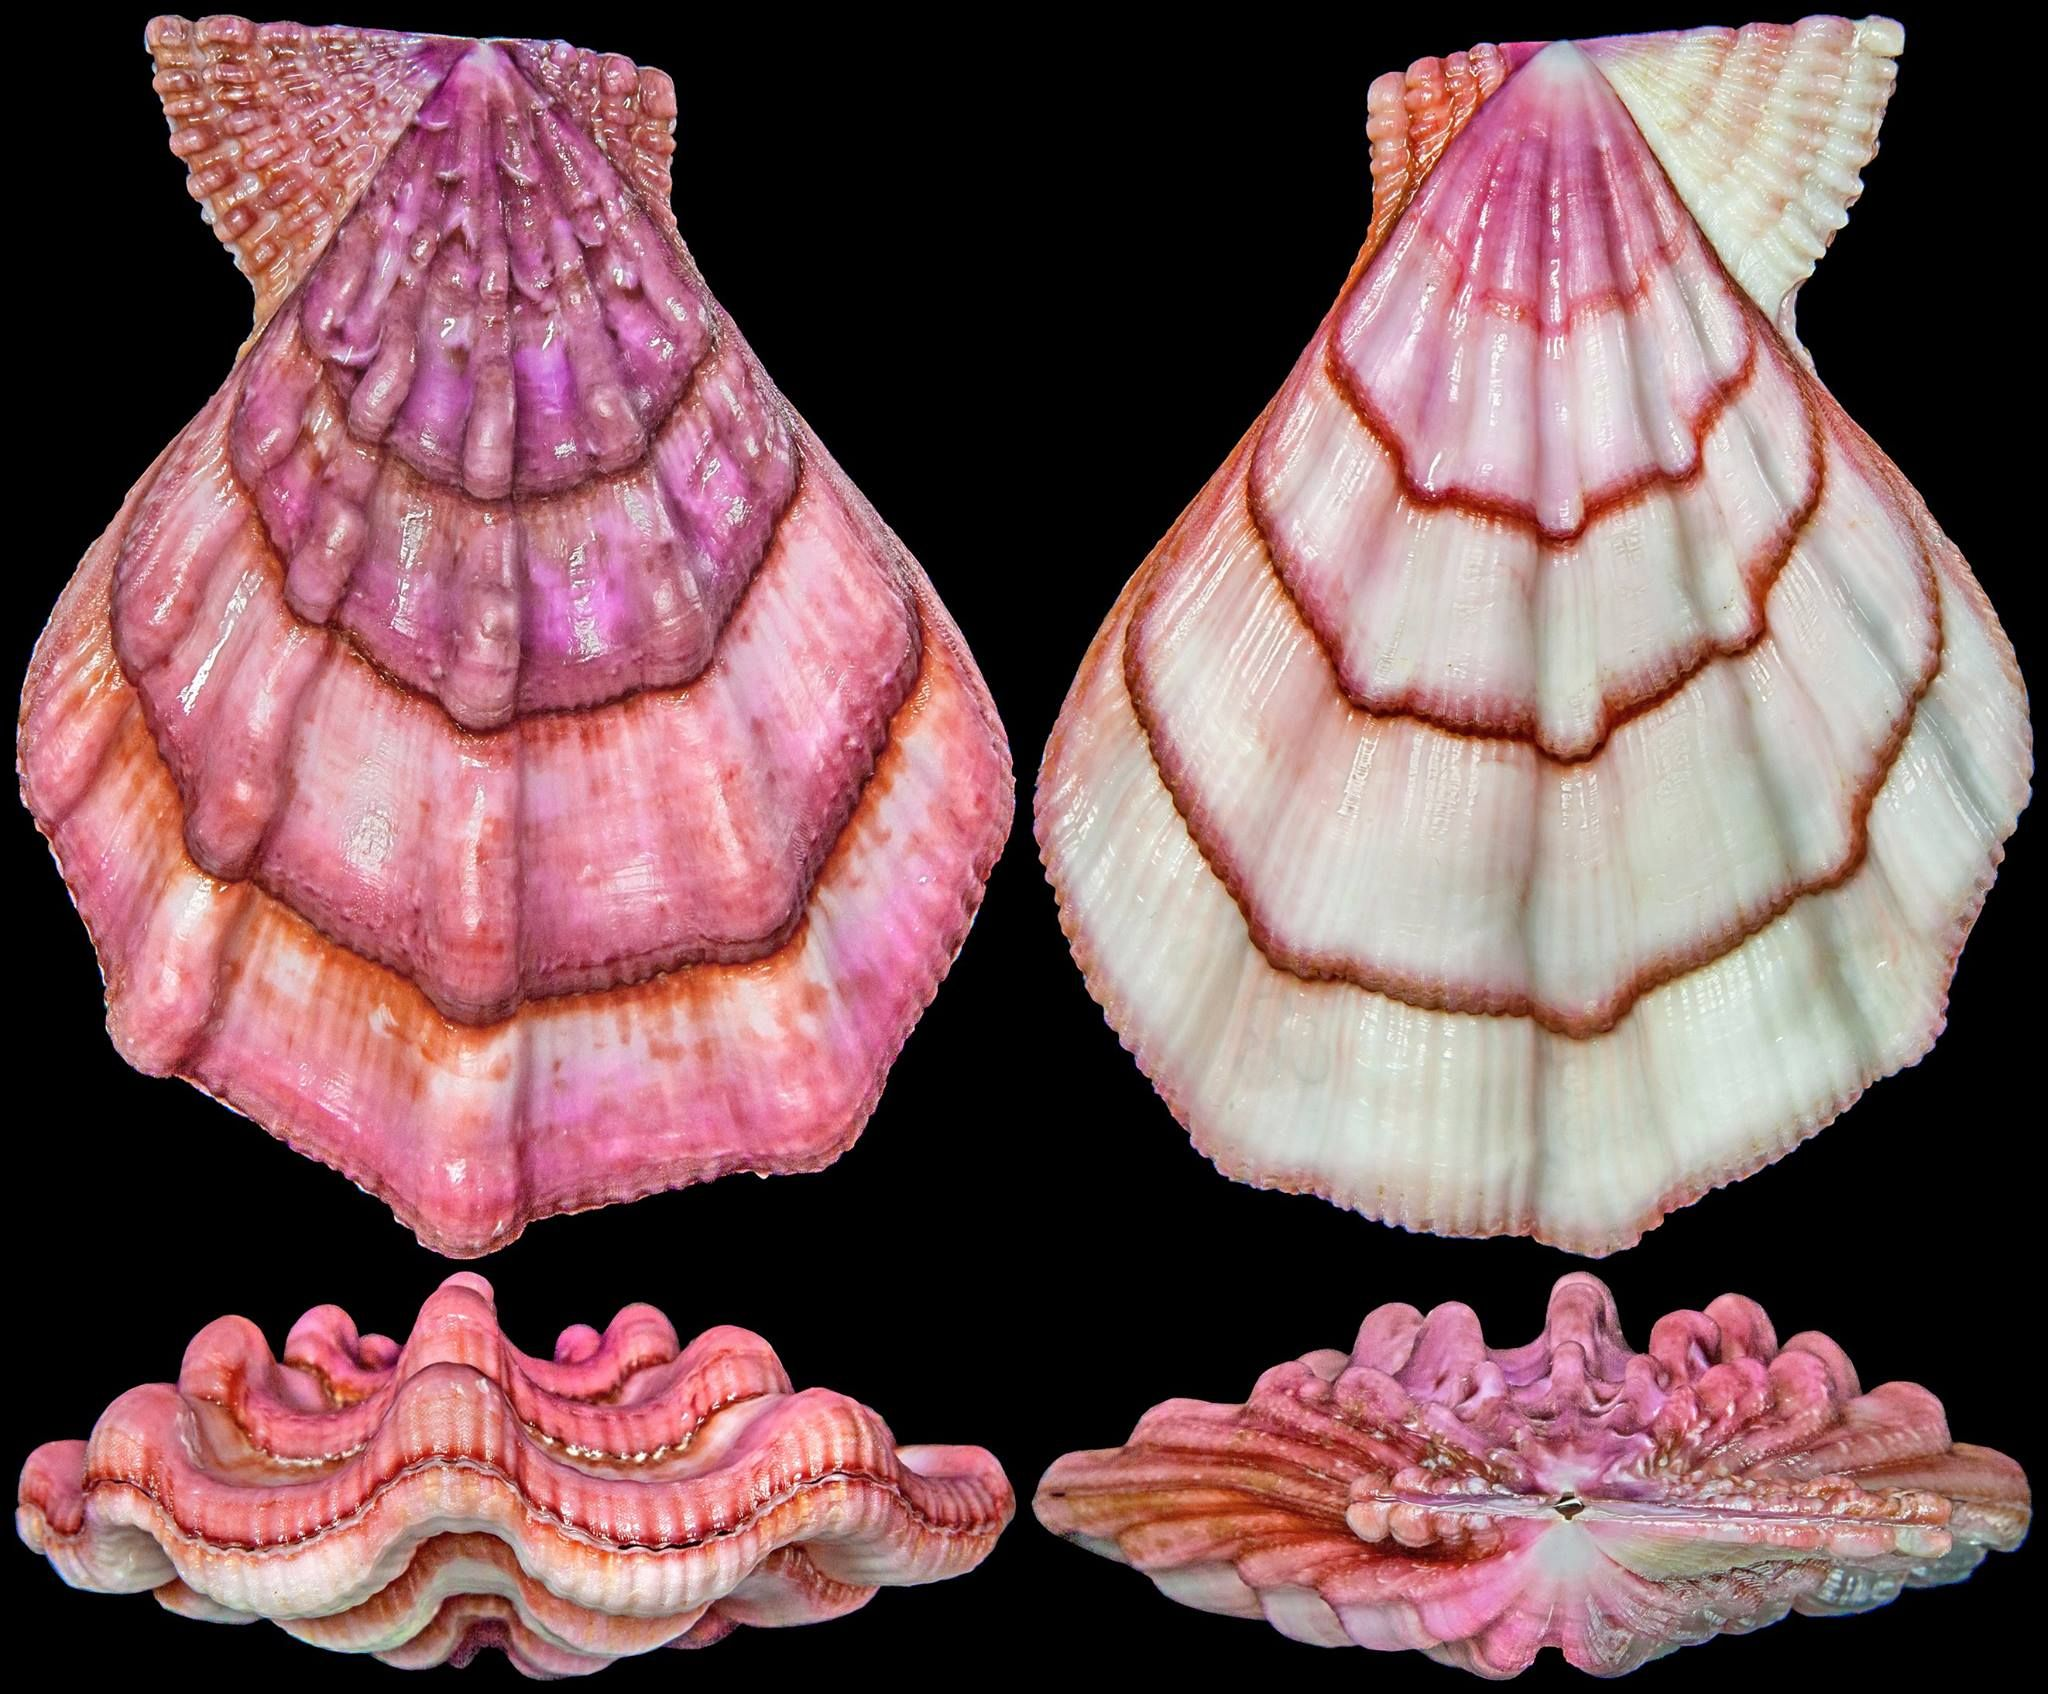 """Chong ChenSeashell Collectors Swiftopecten swiftii (Bernardi, 1858) PECTINIDAE -50m, Trawled on mud and seaweed bottom, Japan Sea, Japan, 103.9mm, F++, 2014/viii The """"Swift's Scallop"""" is a colourful and attractive medium-large pectinid distributed from Japan Sea to northeast Japan to Sakhalin, Russia."""